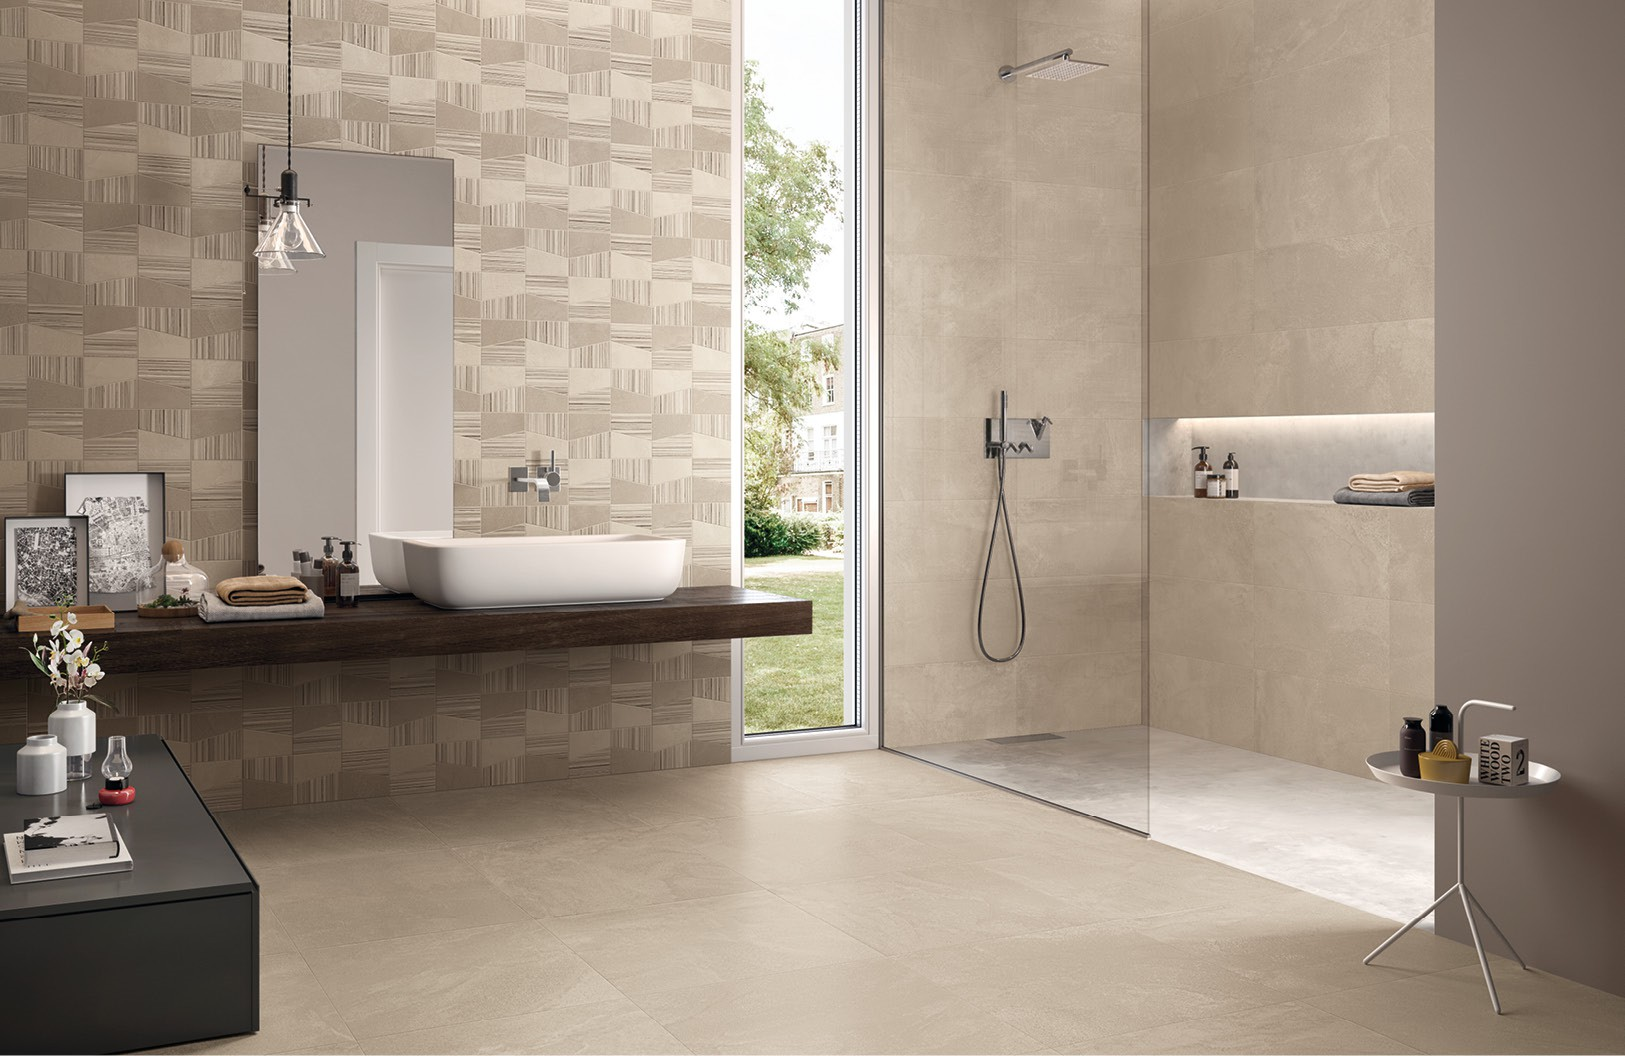 Carrelage salle de bain contemporain for Carrelage moderne